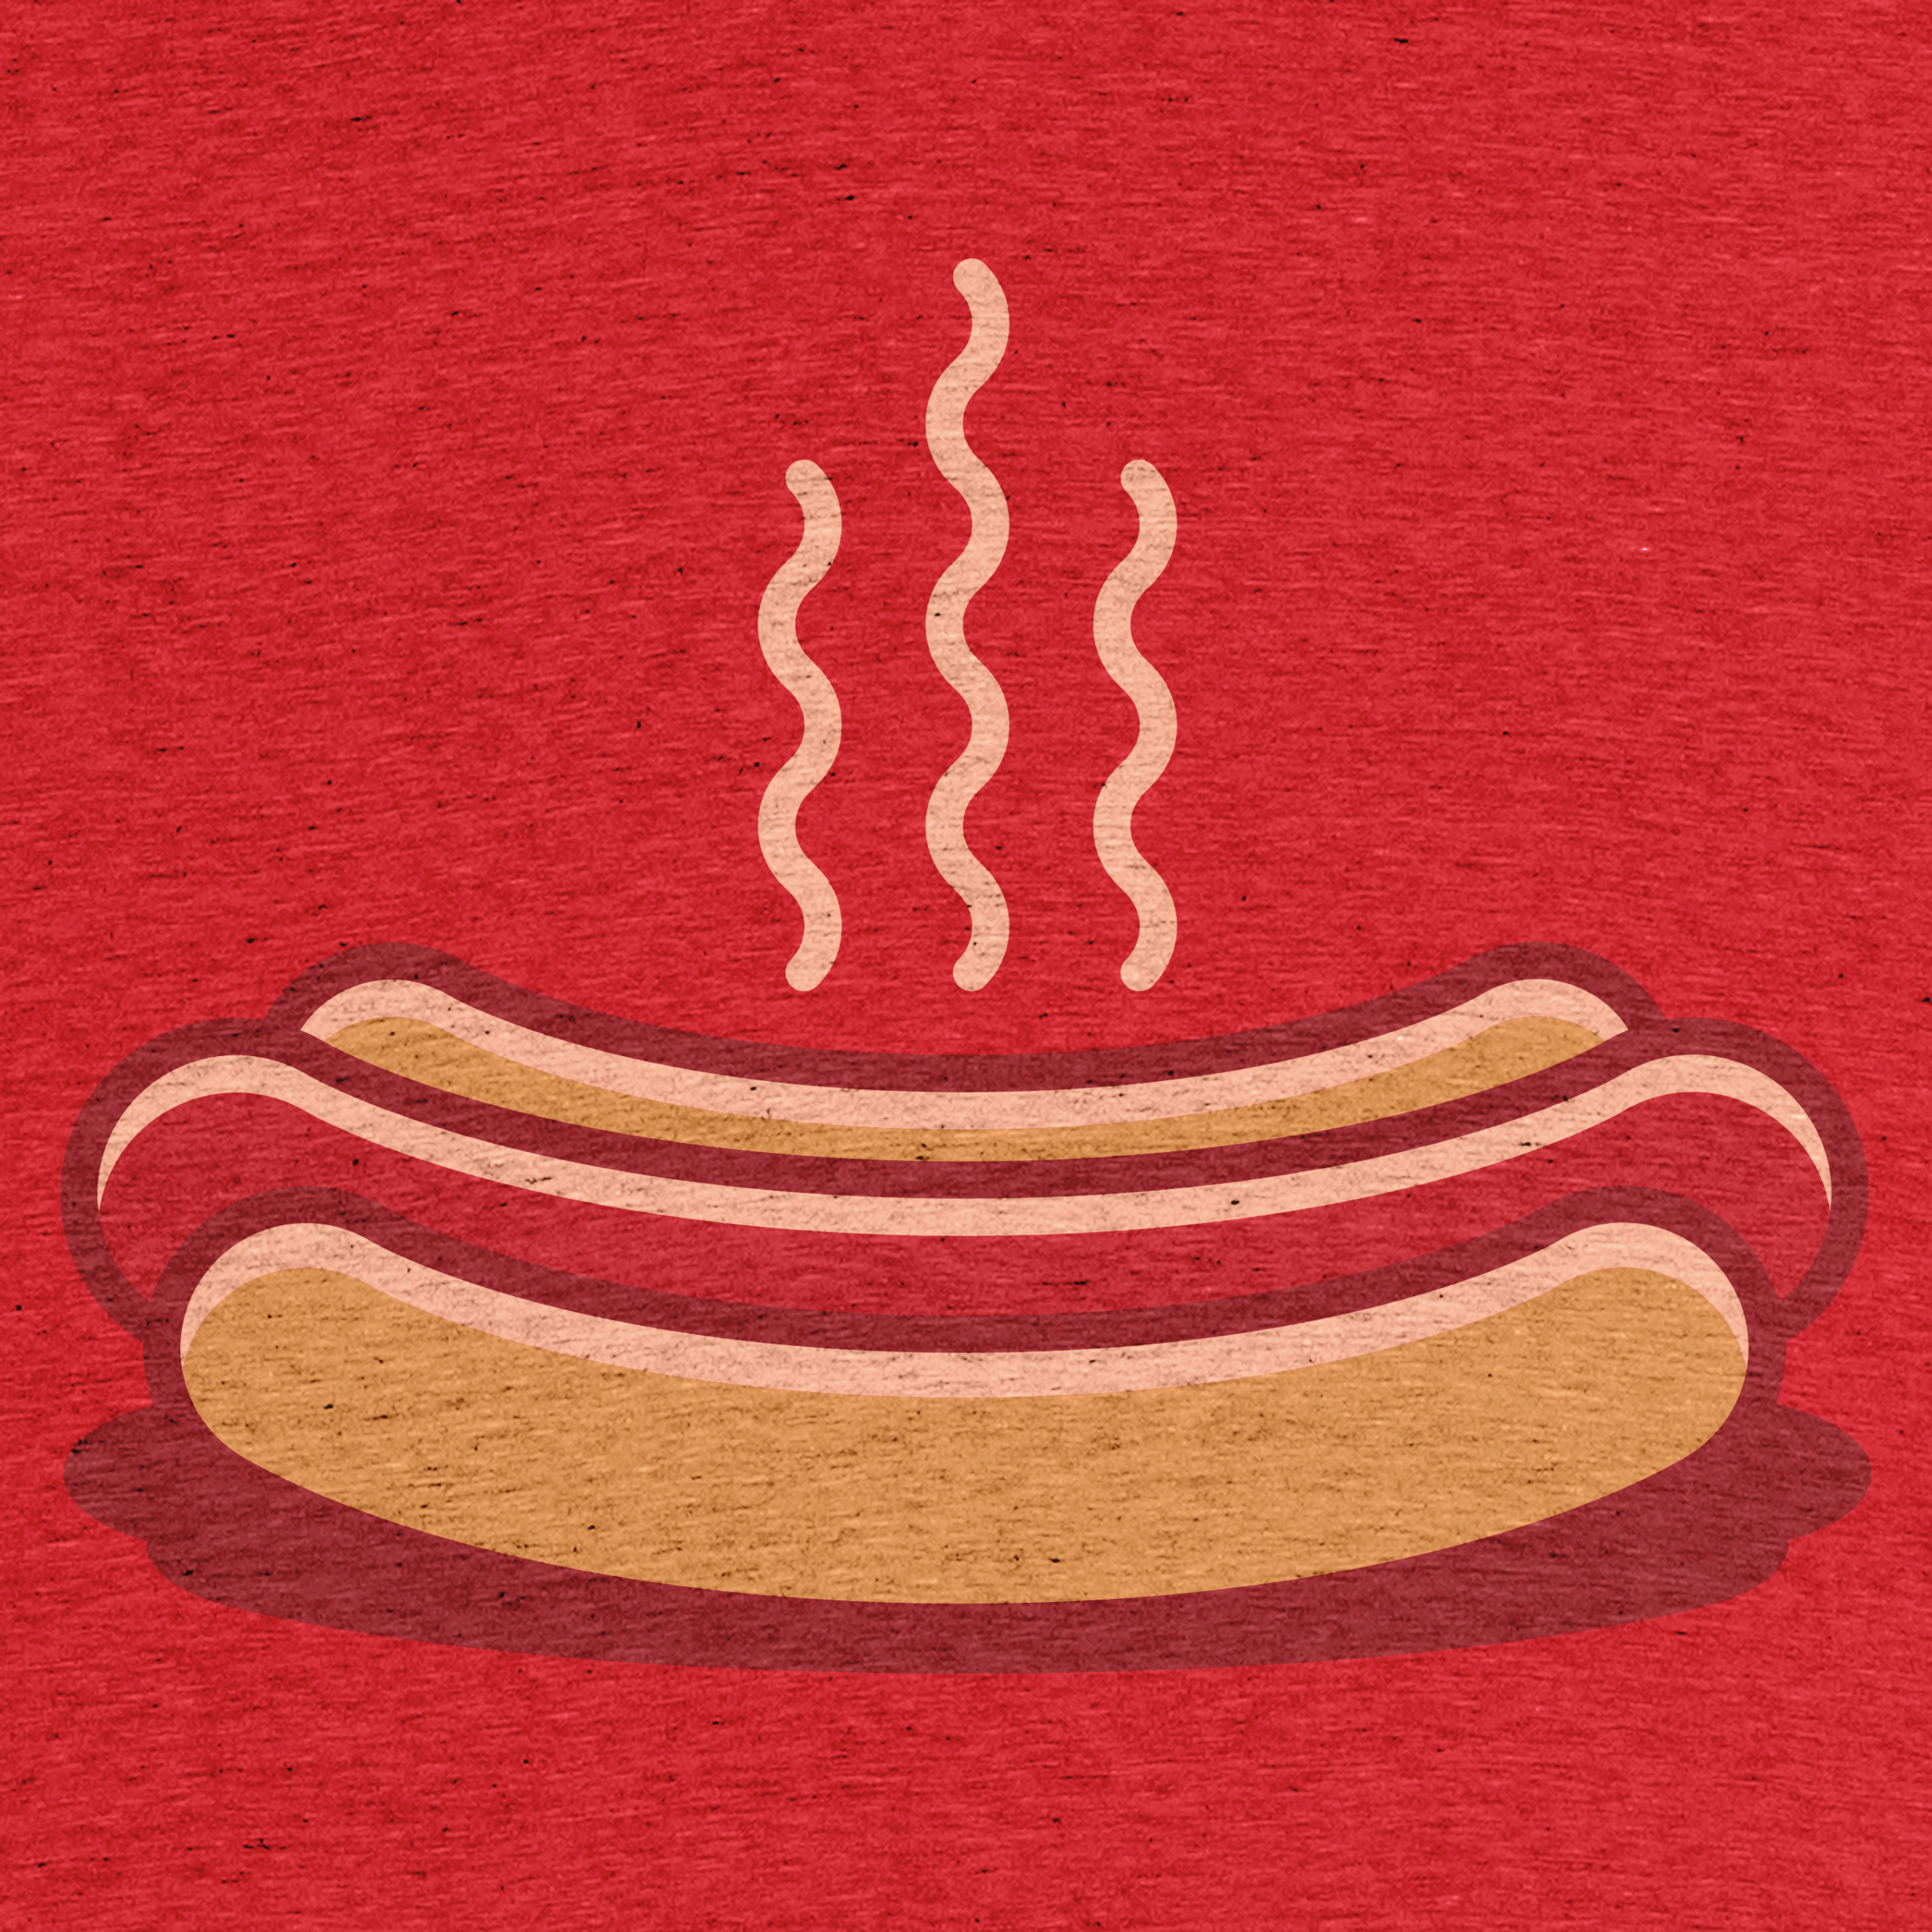 The Hot Dog Shirt